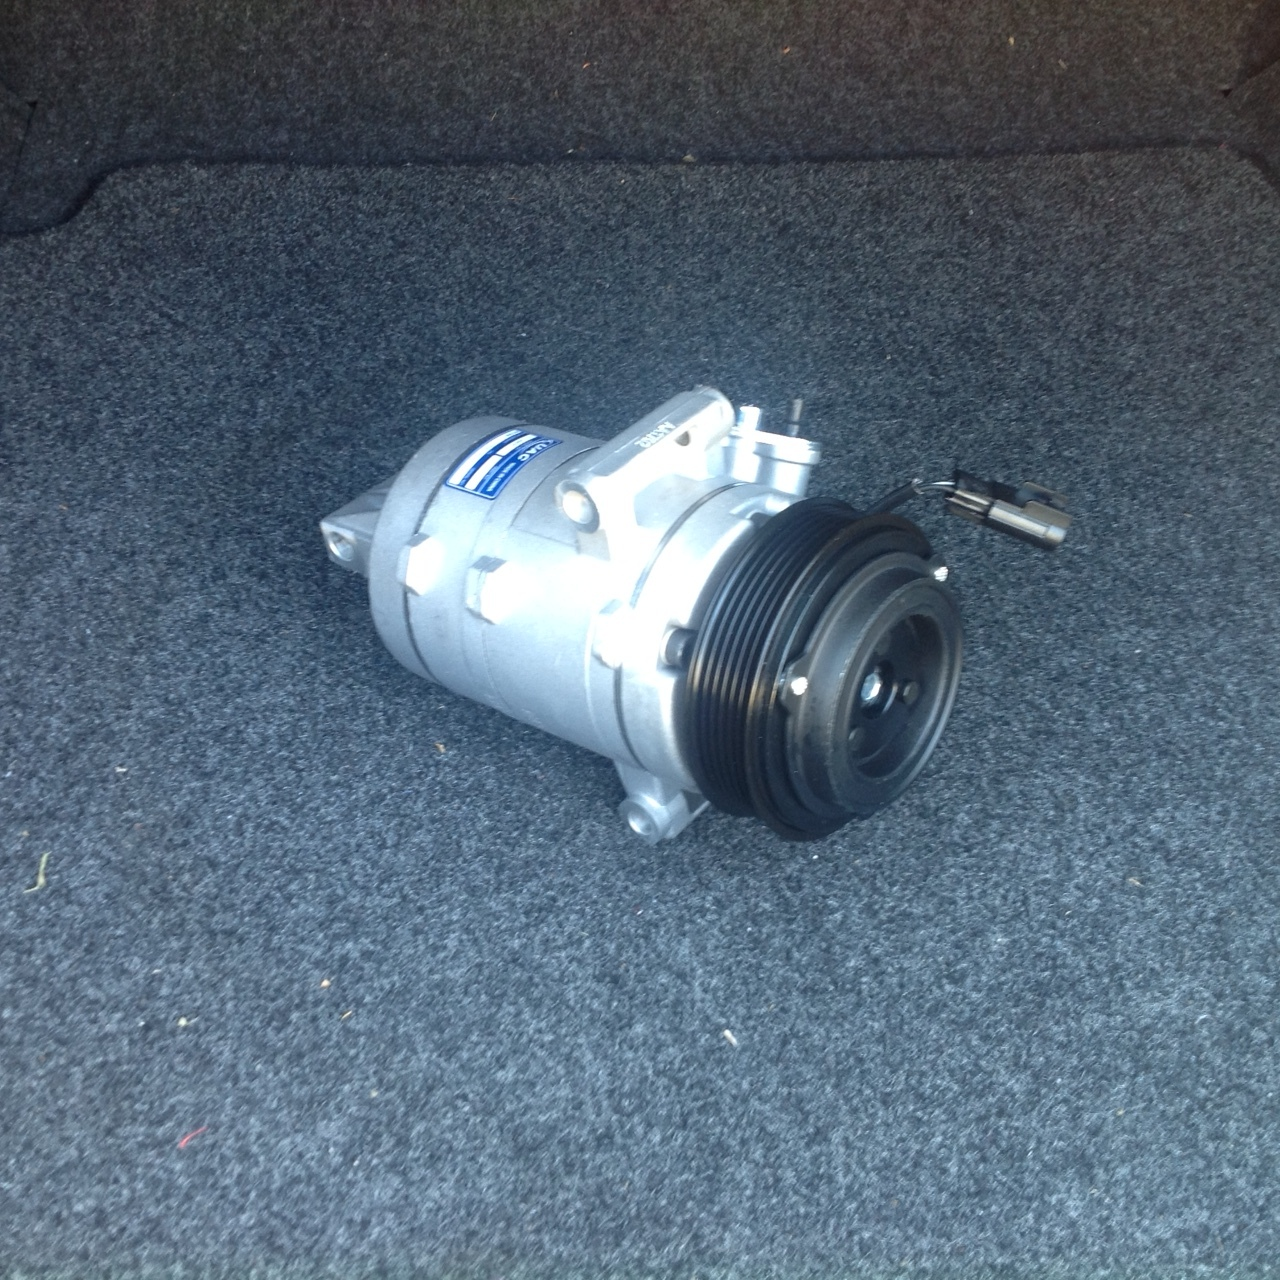 07-12 Lincoln MKZ 3.5 Auto AC Air Conditioning Compressor Repair Part Kit